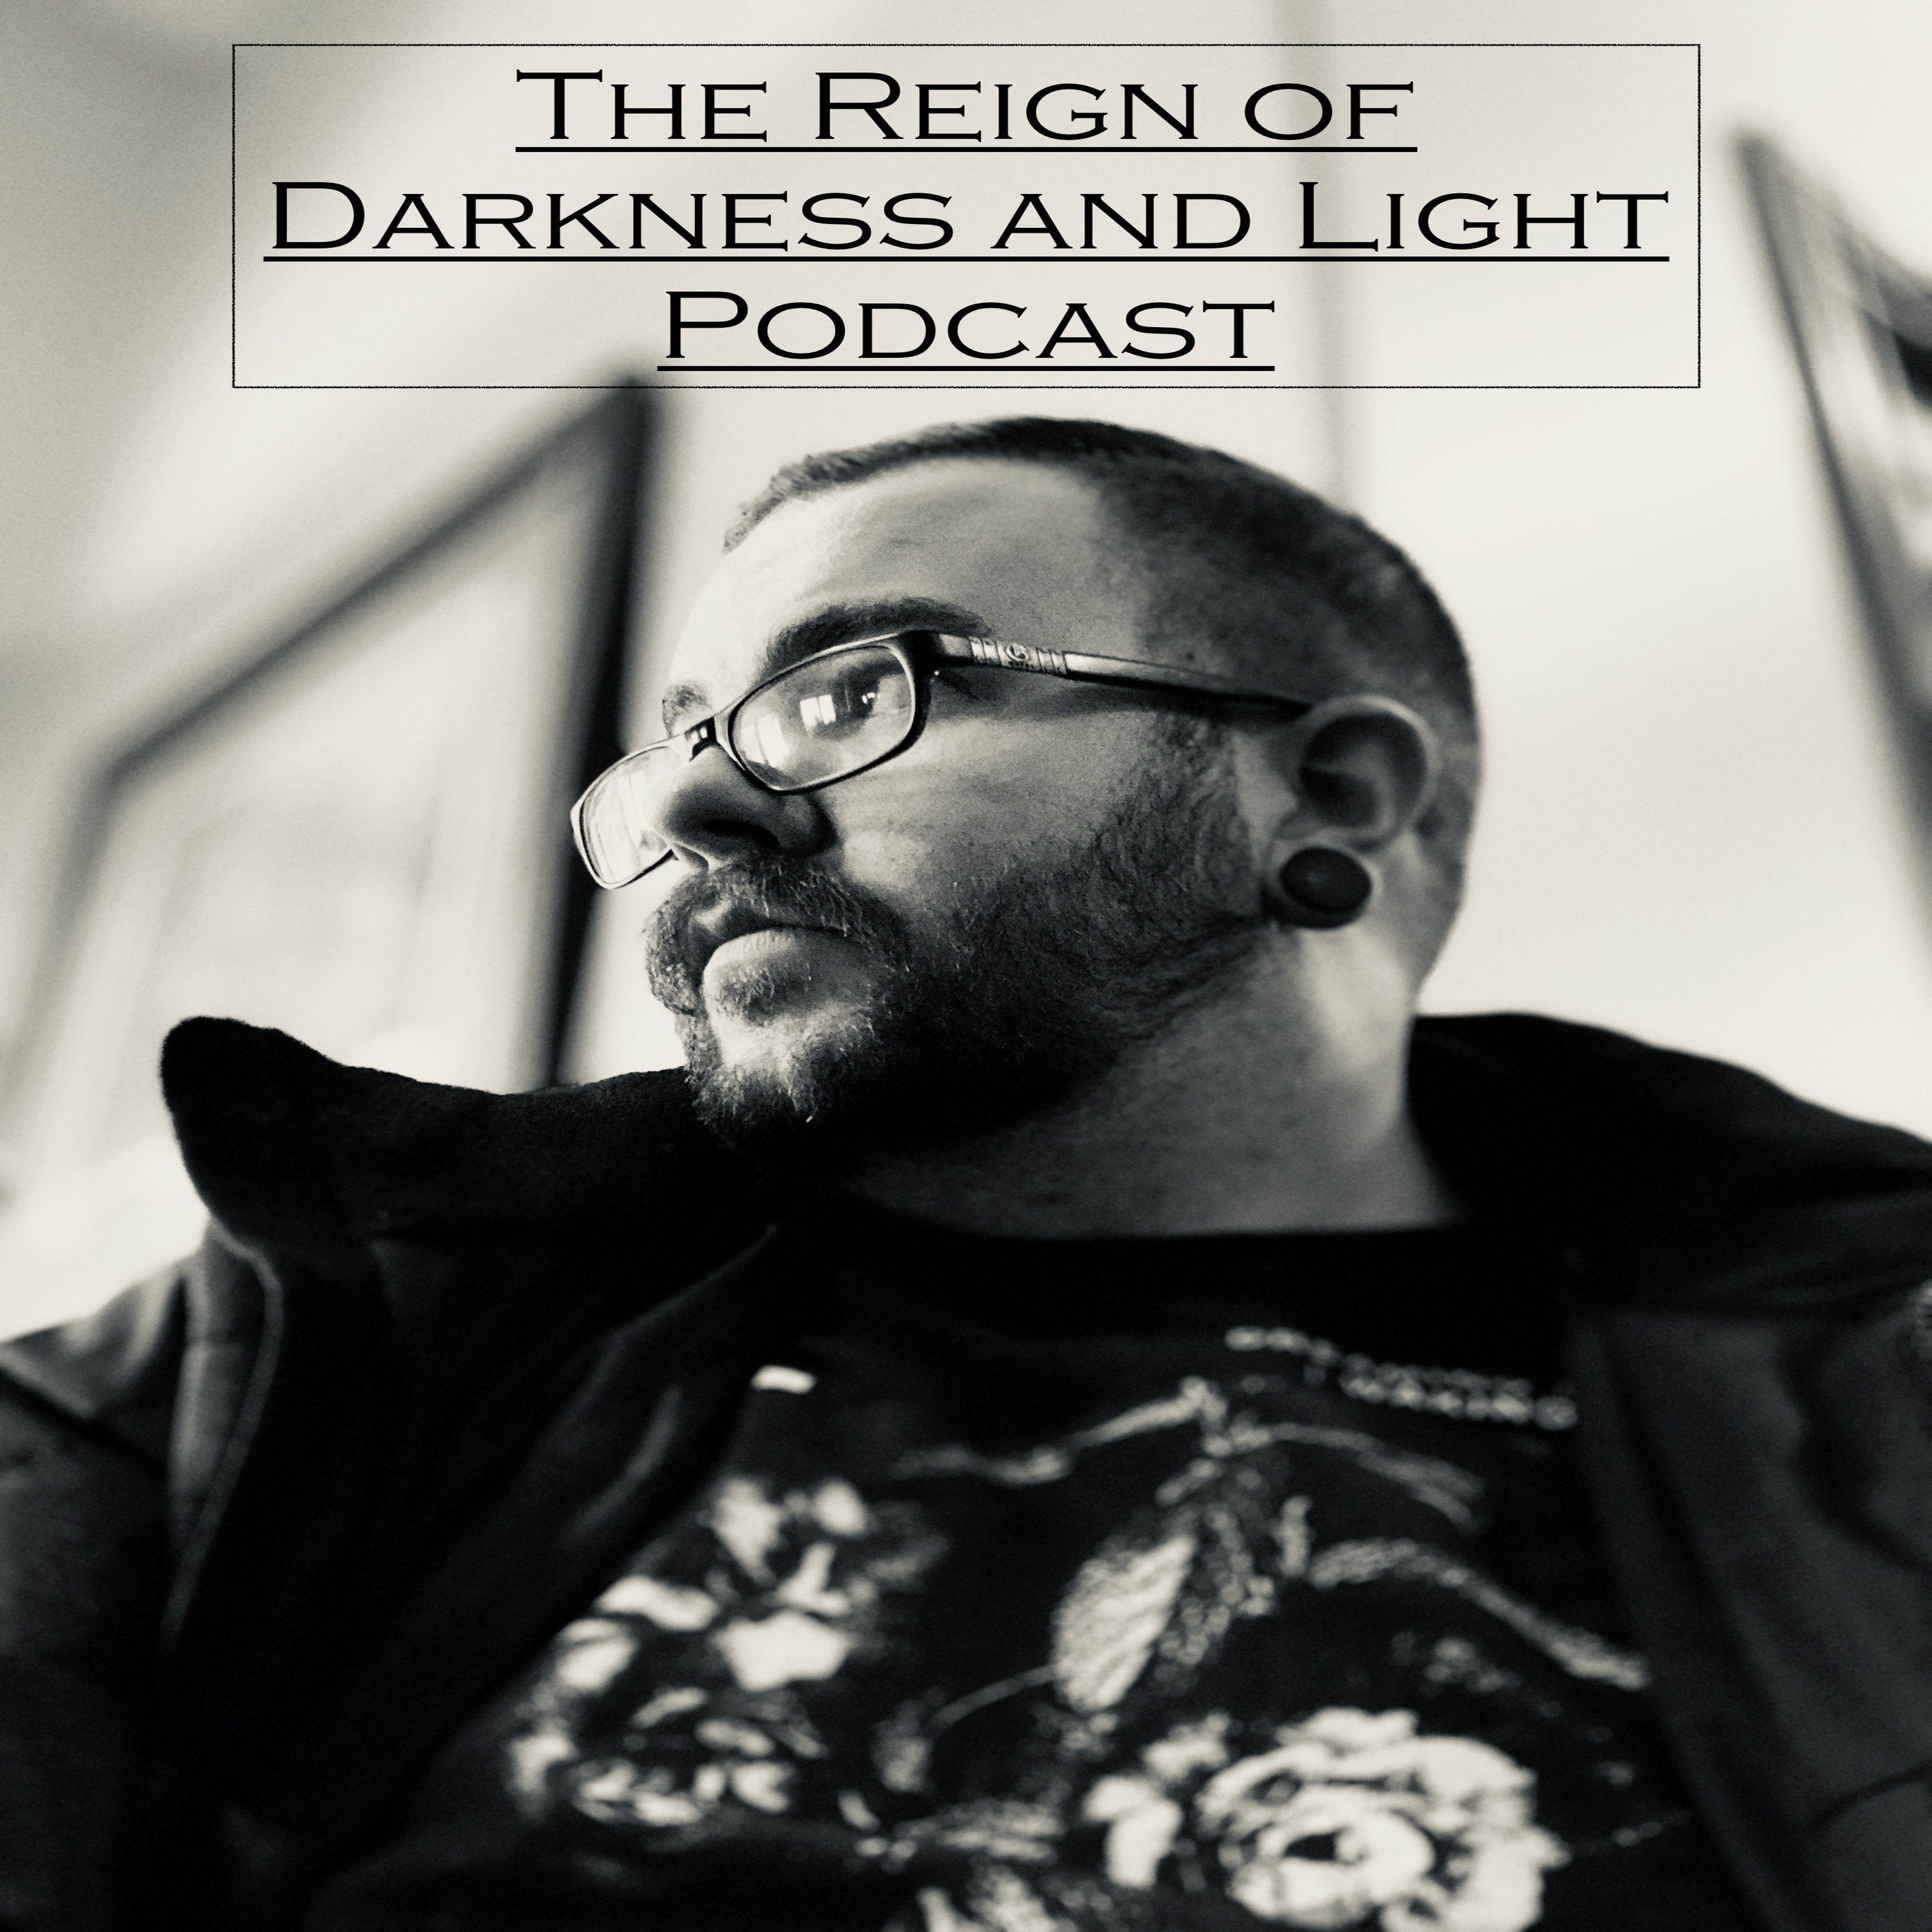 The Reign of Darkness and Light Podcast